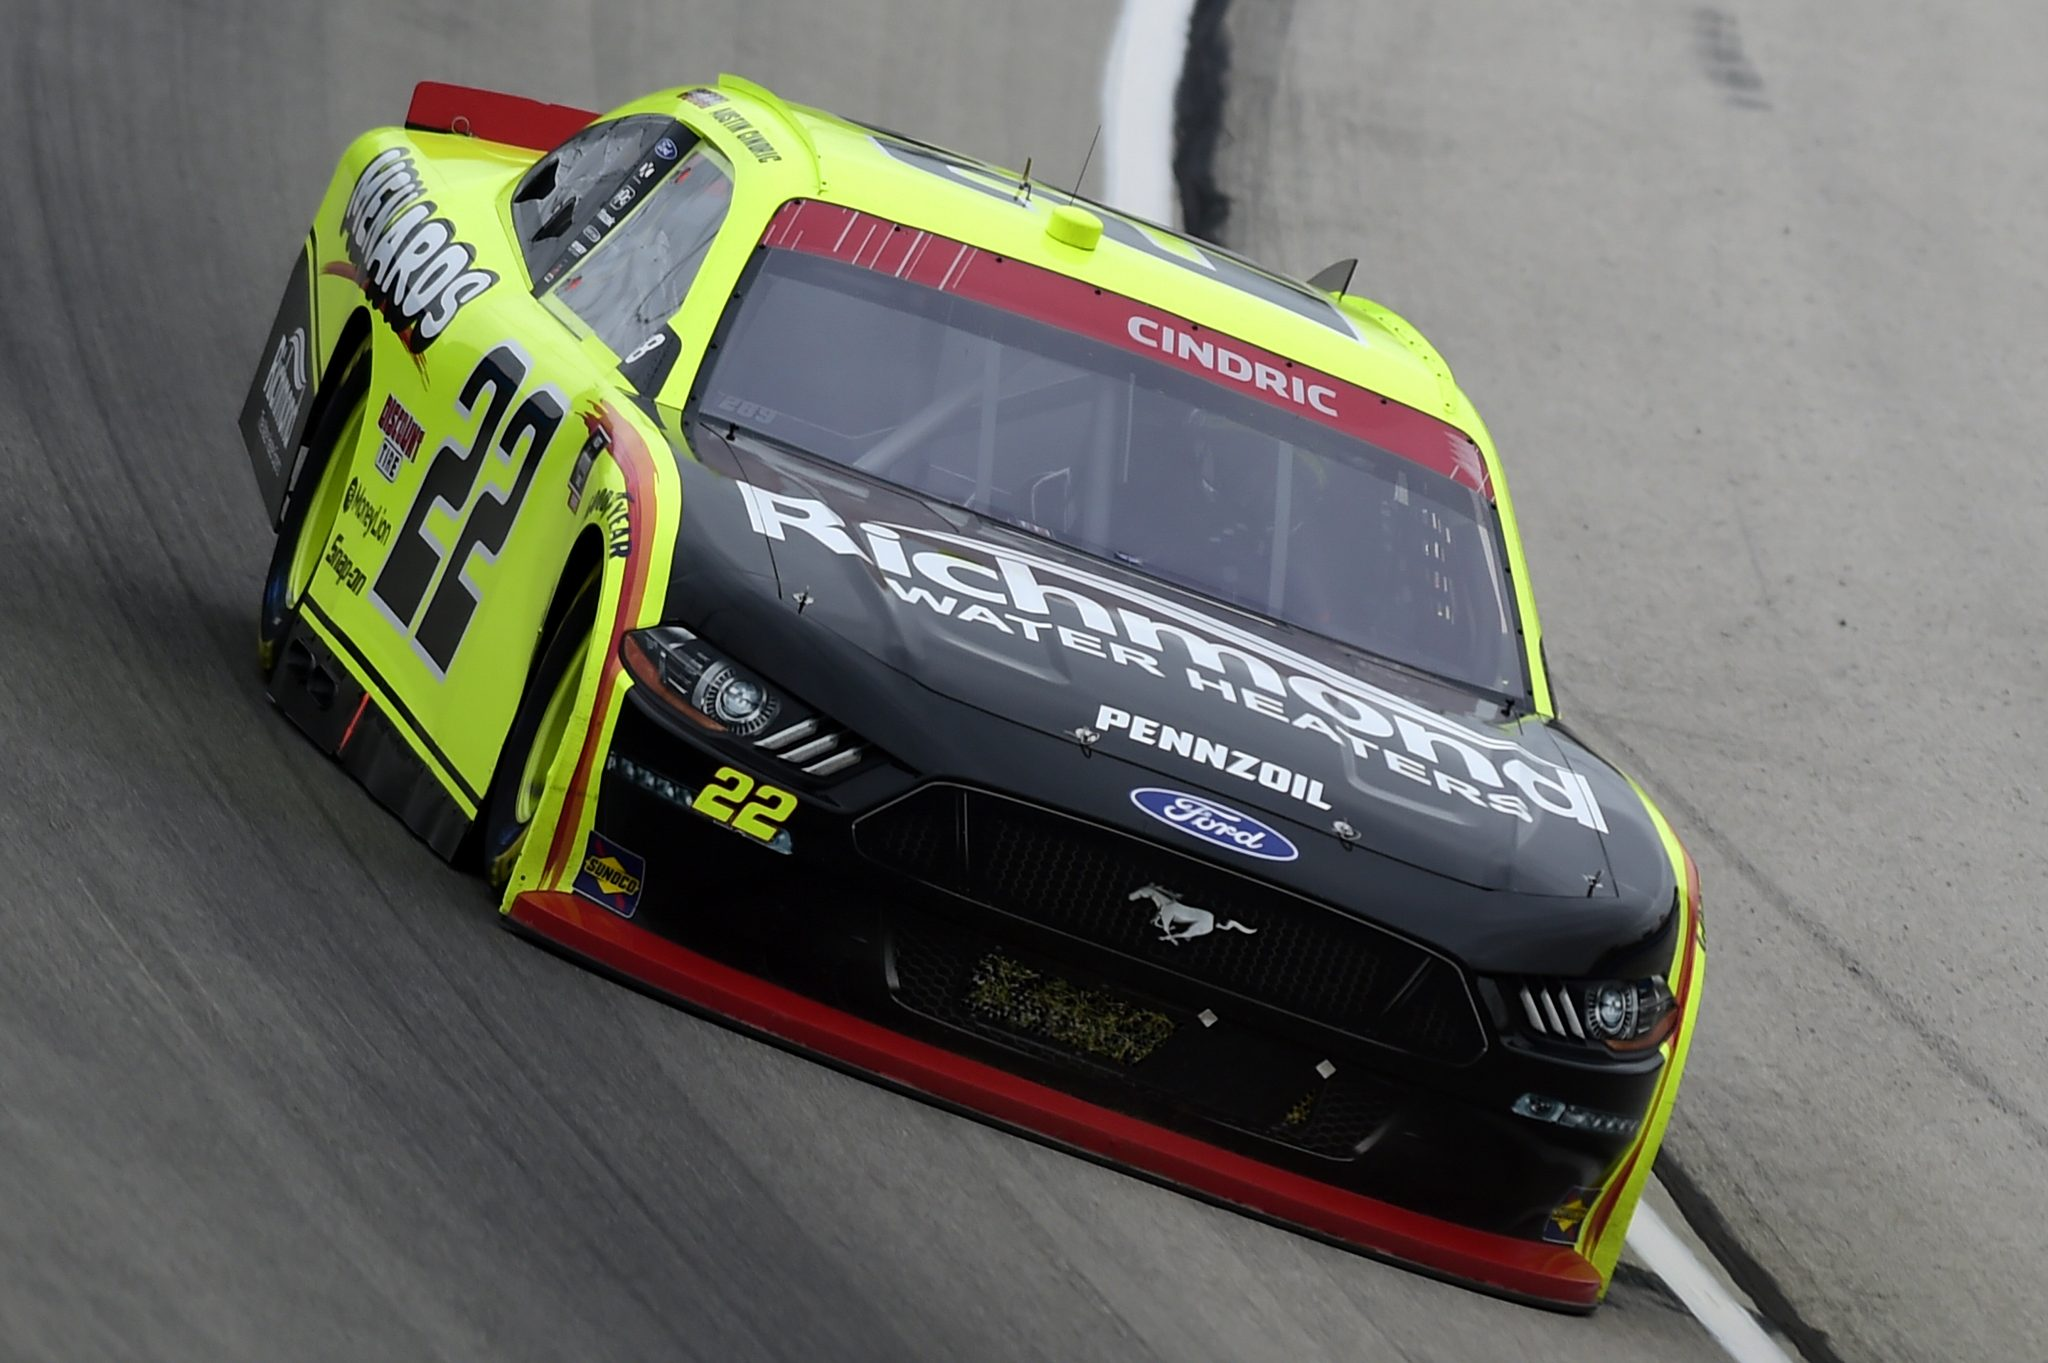 FORT WORTH, TEXAS - OCTOBER 24: Austin Cindric, driver of the #22 Menards/Richmond Ford, drives during the NASCAR Xfinity Series O'Reilly Auto Parts 300 at Texas Motor Speedway on October 24, 2020 in Fort Worth, Texas. (Photo by Jared C. Tilton/Getty Images) | Getty Images